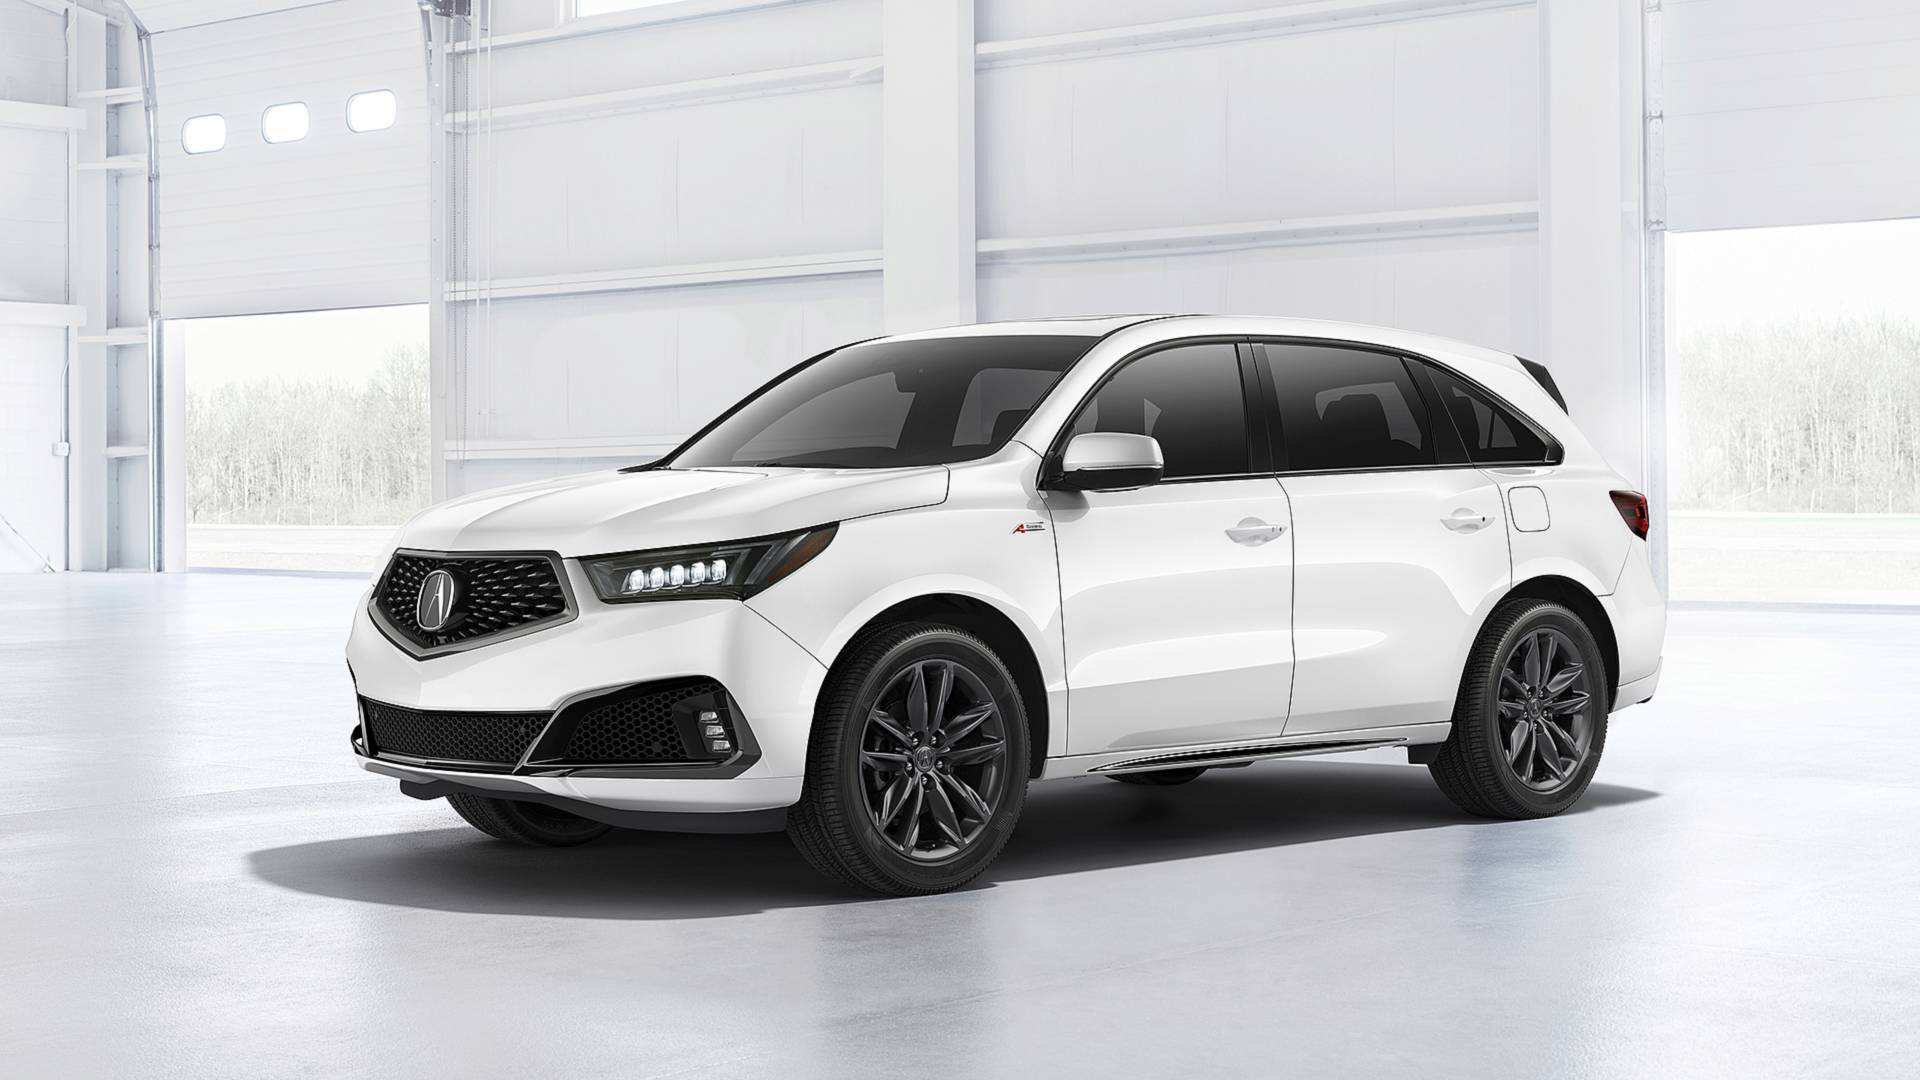 93 Gallery of Best When Will Acura 2019 Mdx Be Available Performance Specs and Review by Best When Will Acura 2019 Mdx Be Available Performance